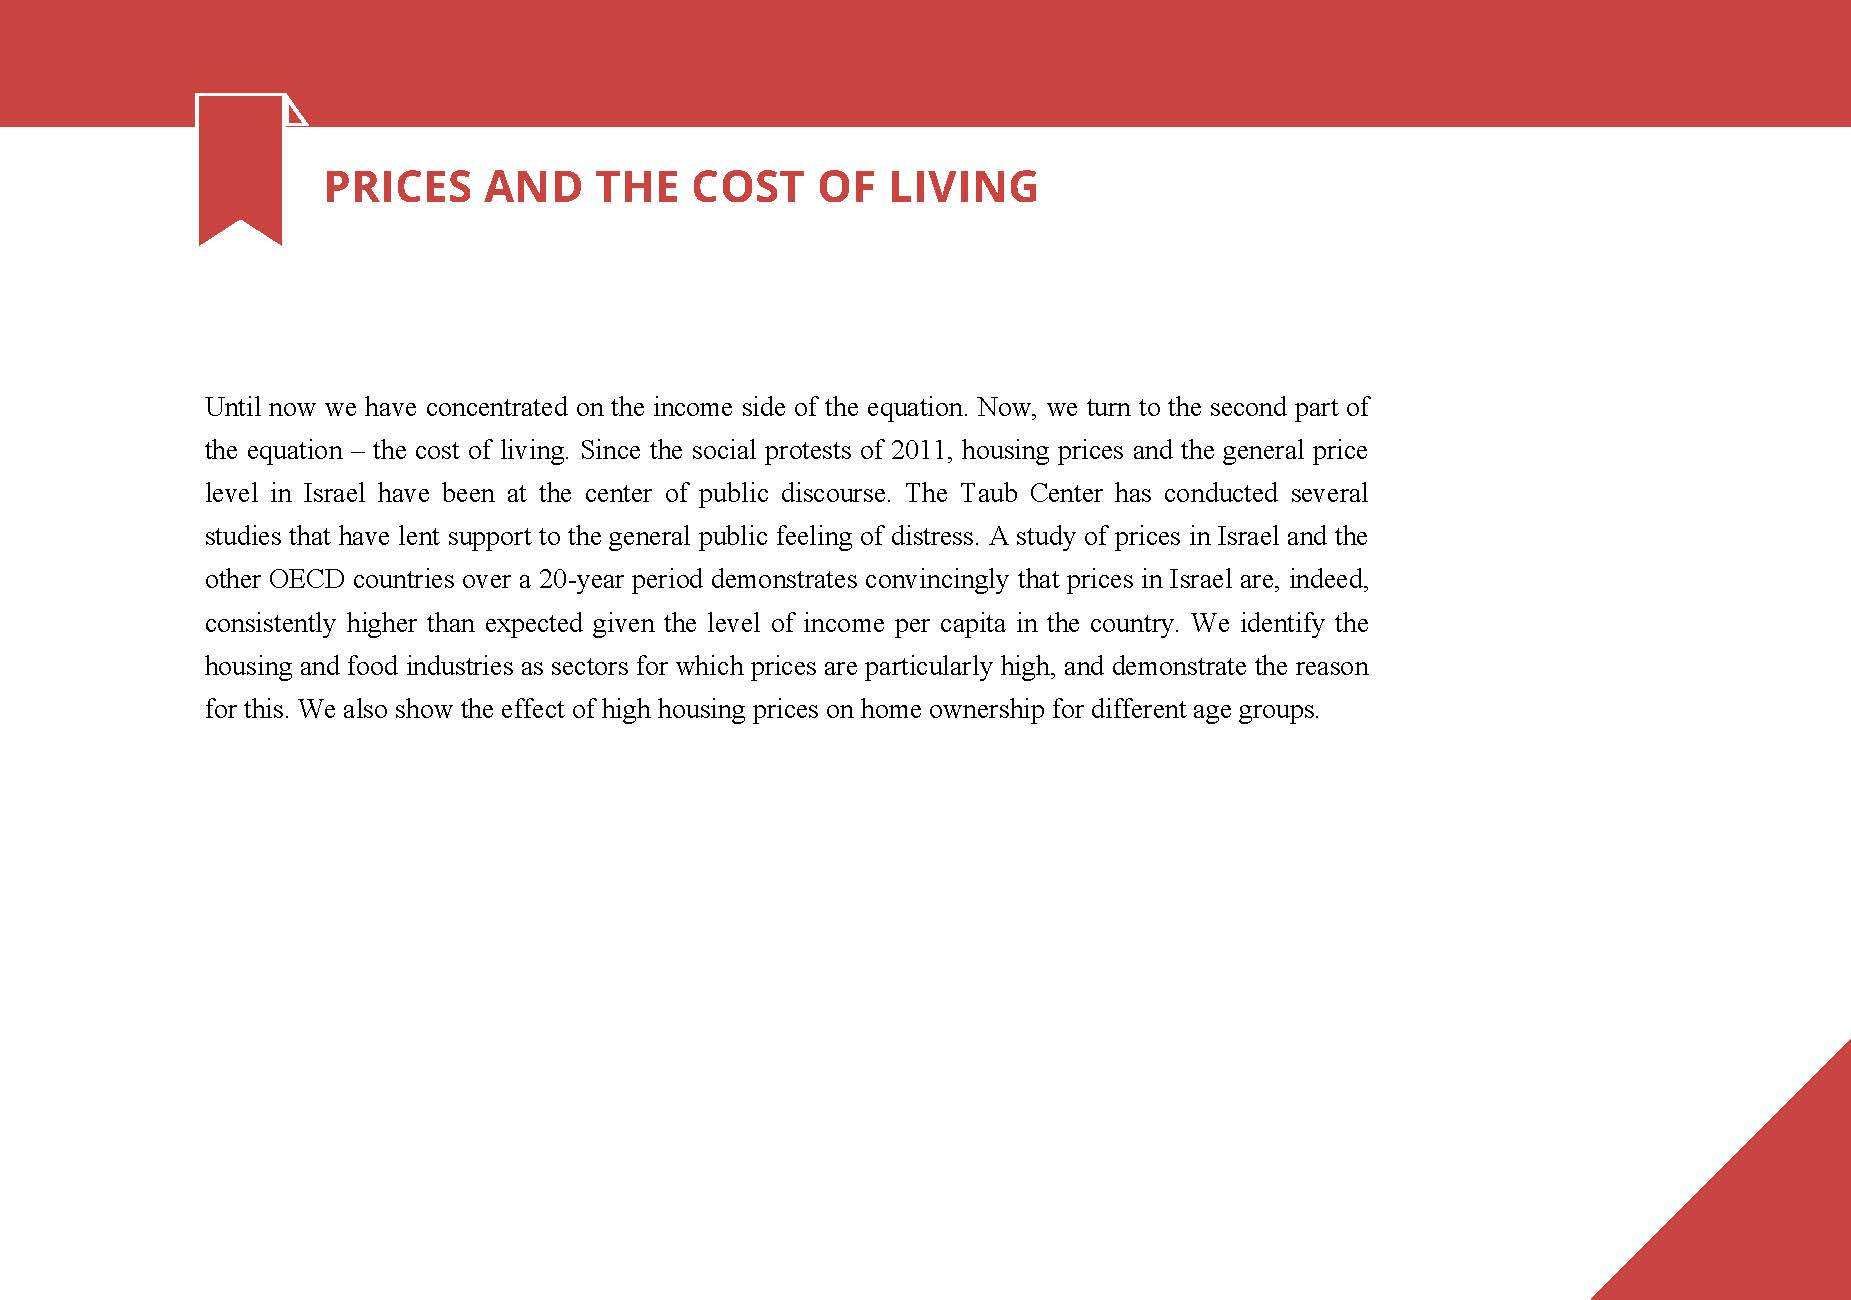 Prices and the cost of living in Israel Taub Center